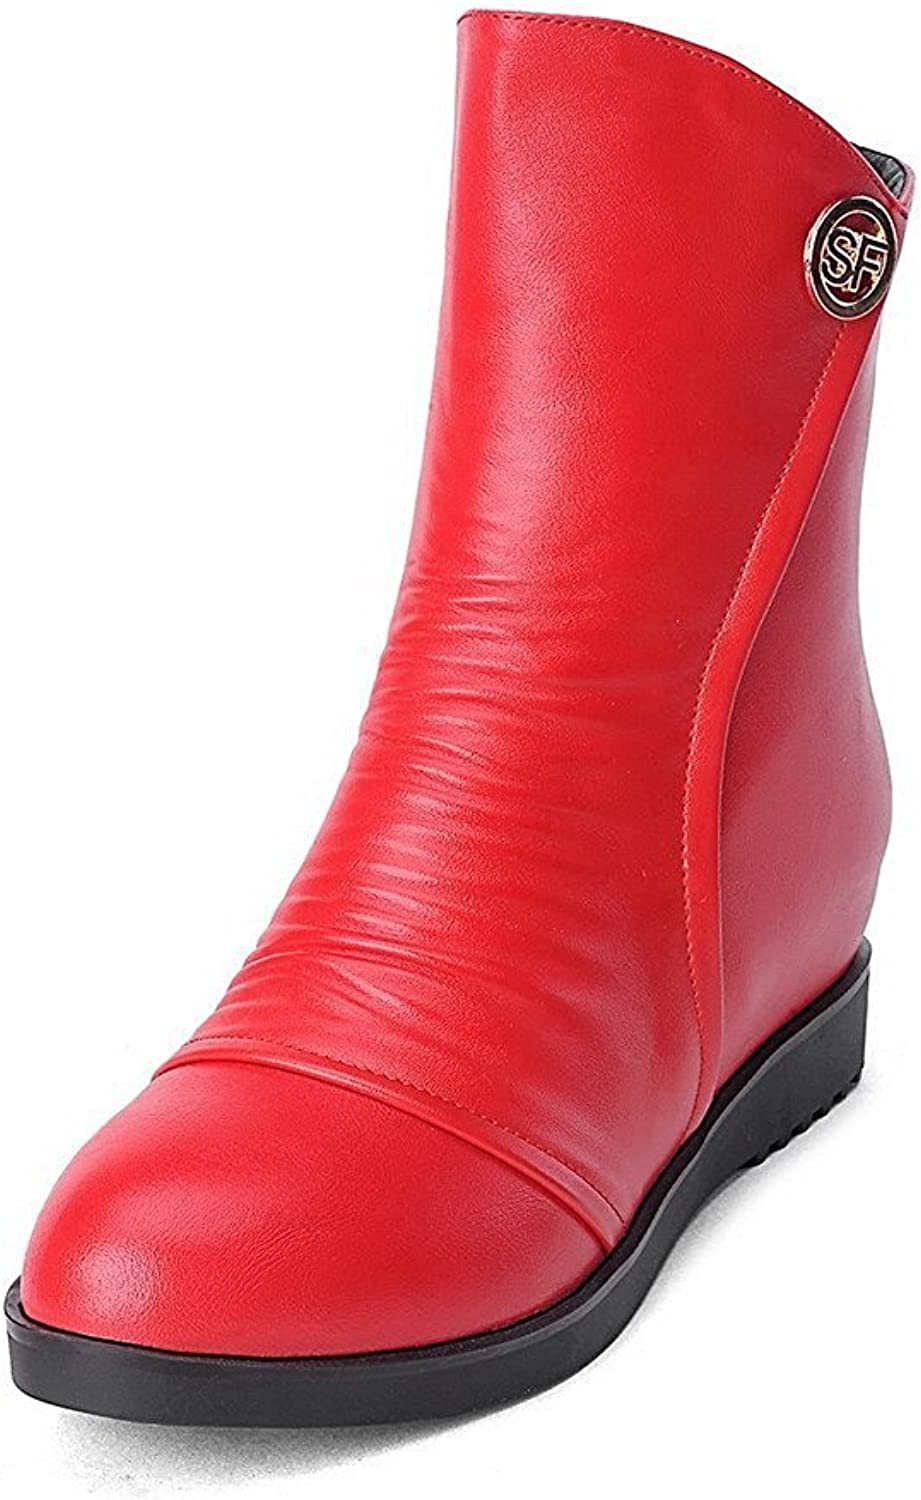 Laolaooo shoes Women's Soft Material Round Closed Toe Kitten-Heels Zipper Solid Boots